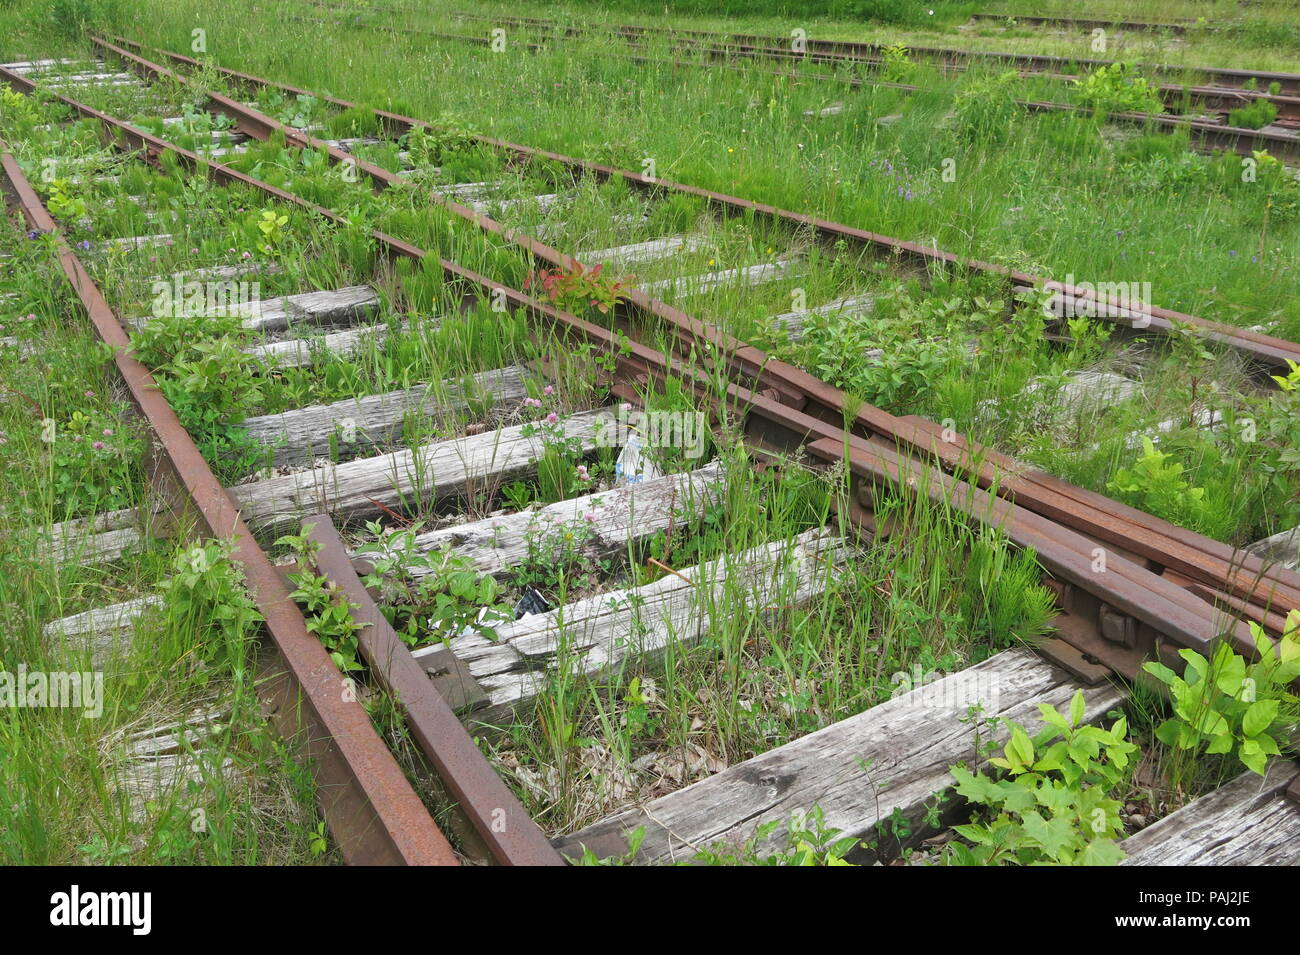 A close up view of the overgrown railtracks at the New Brunswick Railway Museum, Hillsborough - Stock Image